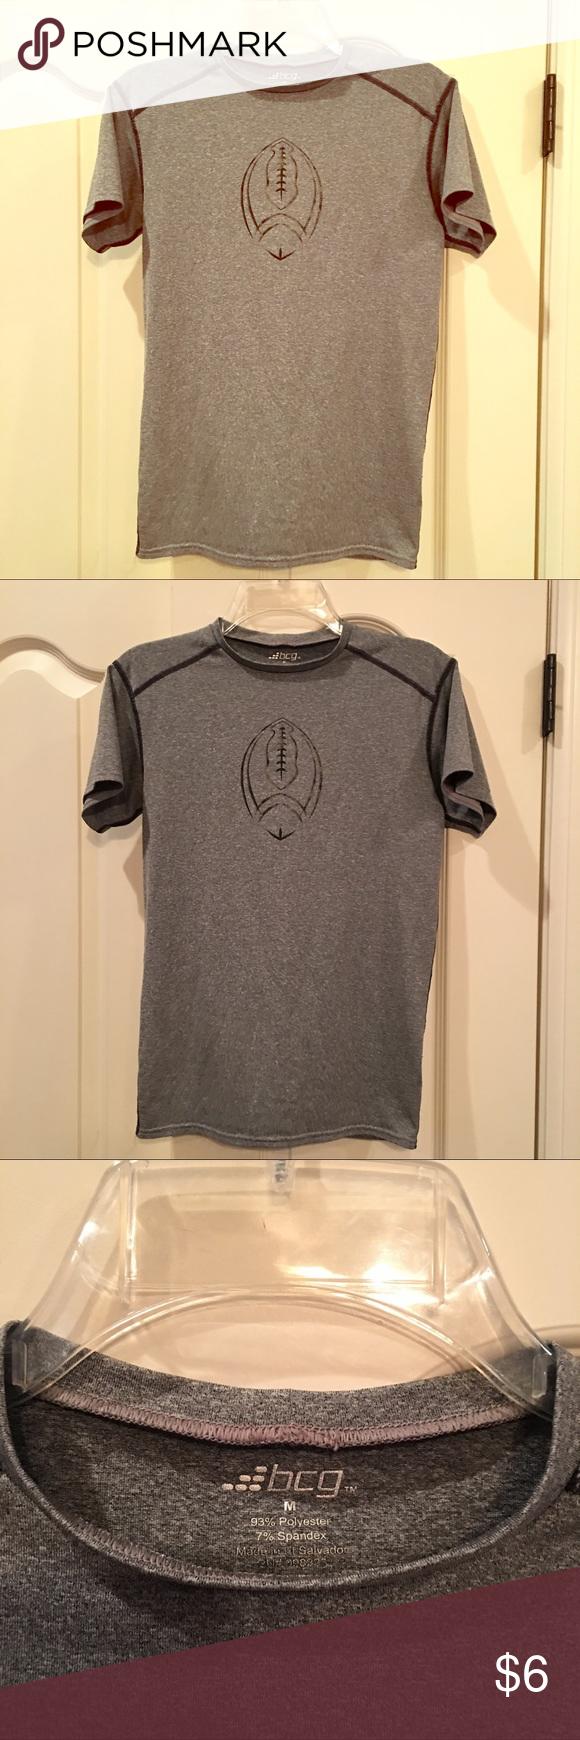 bcg boys gray FOOTBALL DRI-FIT shirt size M •bcg dri-fit football shirt, size Medium •excellent used condition •from a pet free/smoke free home BCG Shirts & Tops Tees - Short Sleeve